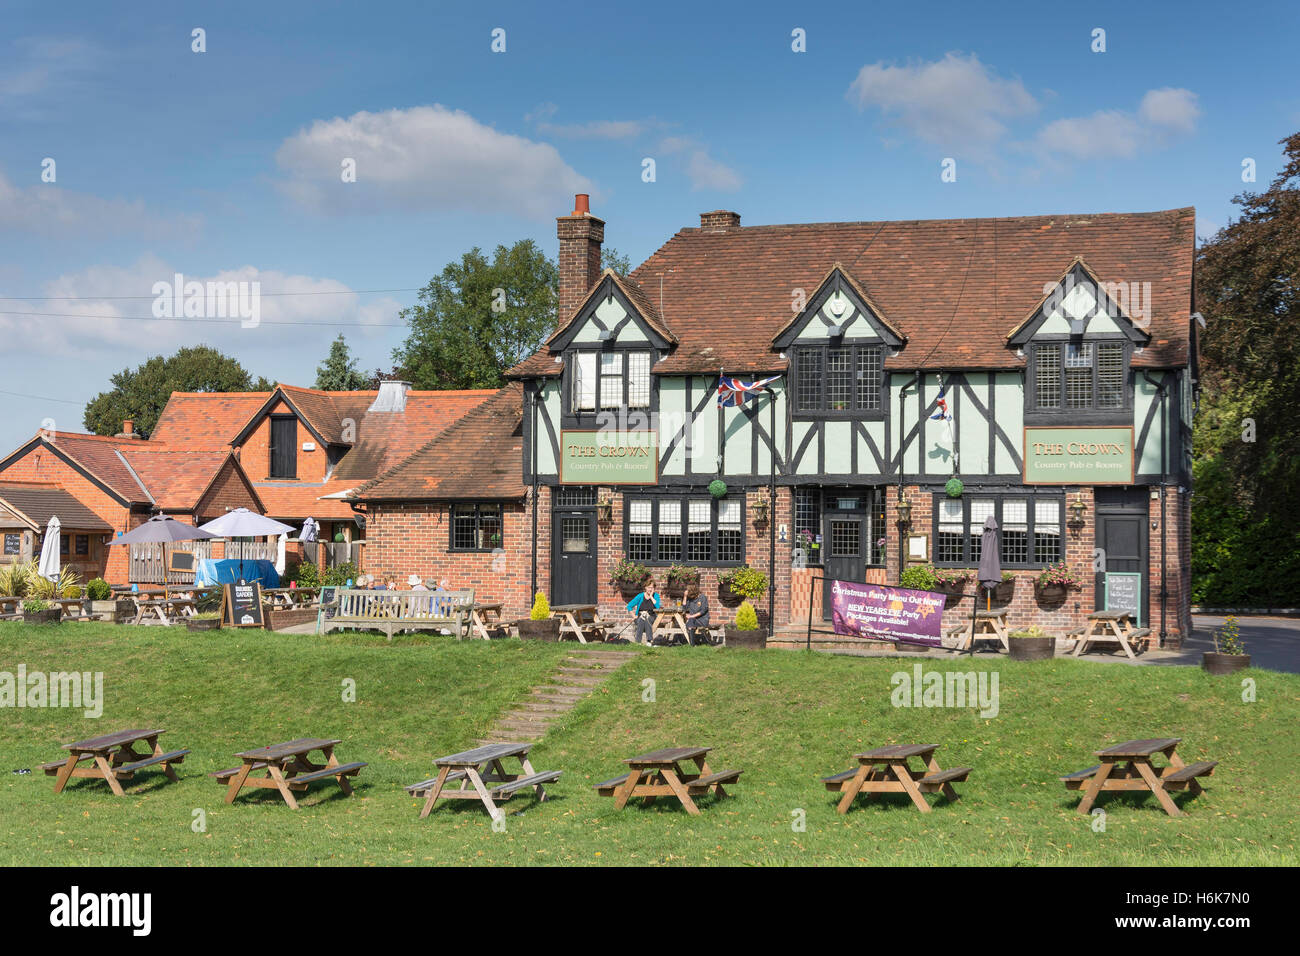 18th century 'The Crown' Country Pub, Cookham Moor, Cookham, Berkshire, England, United Kingdom - Stock Image